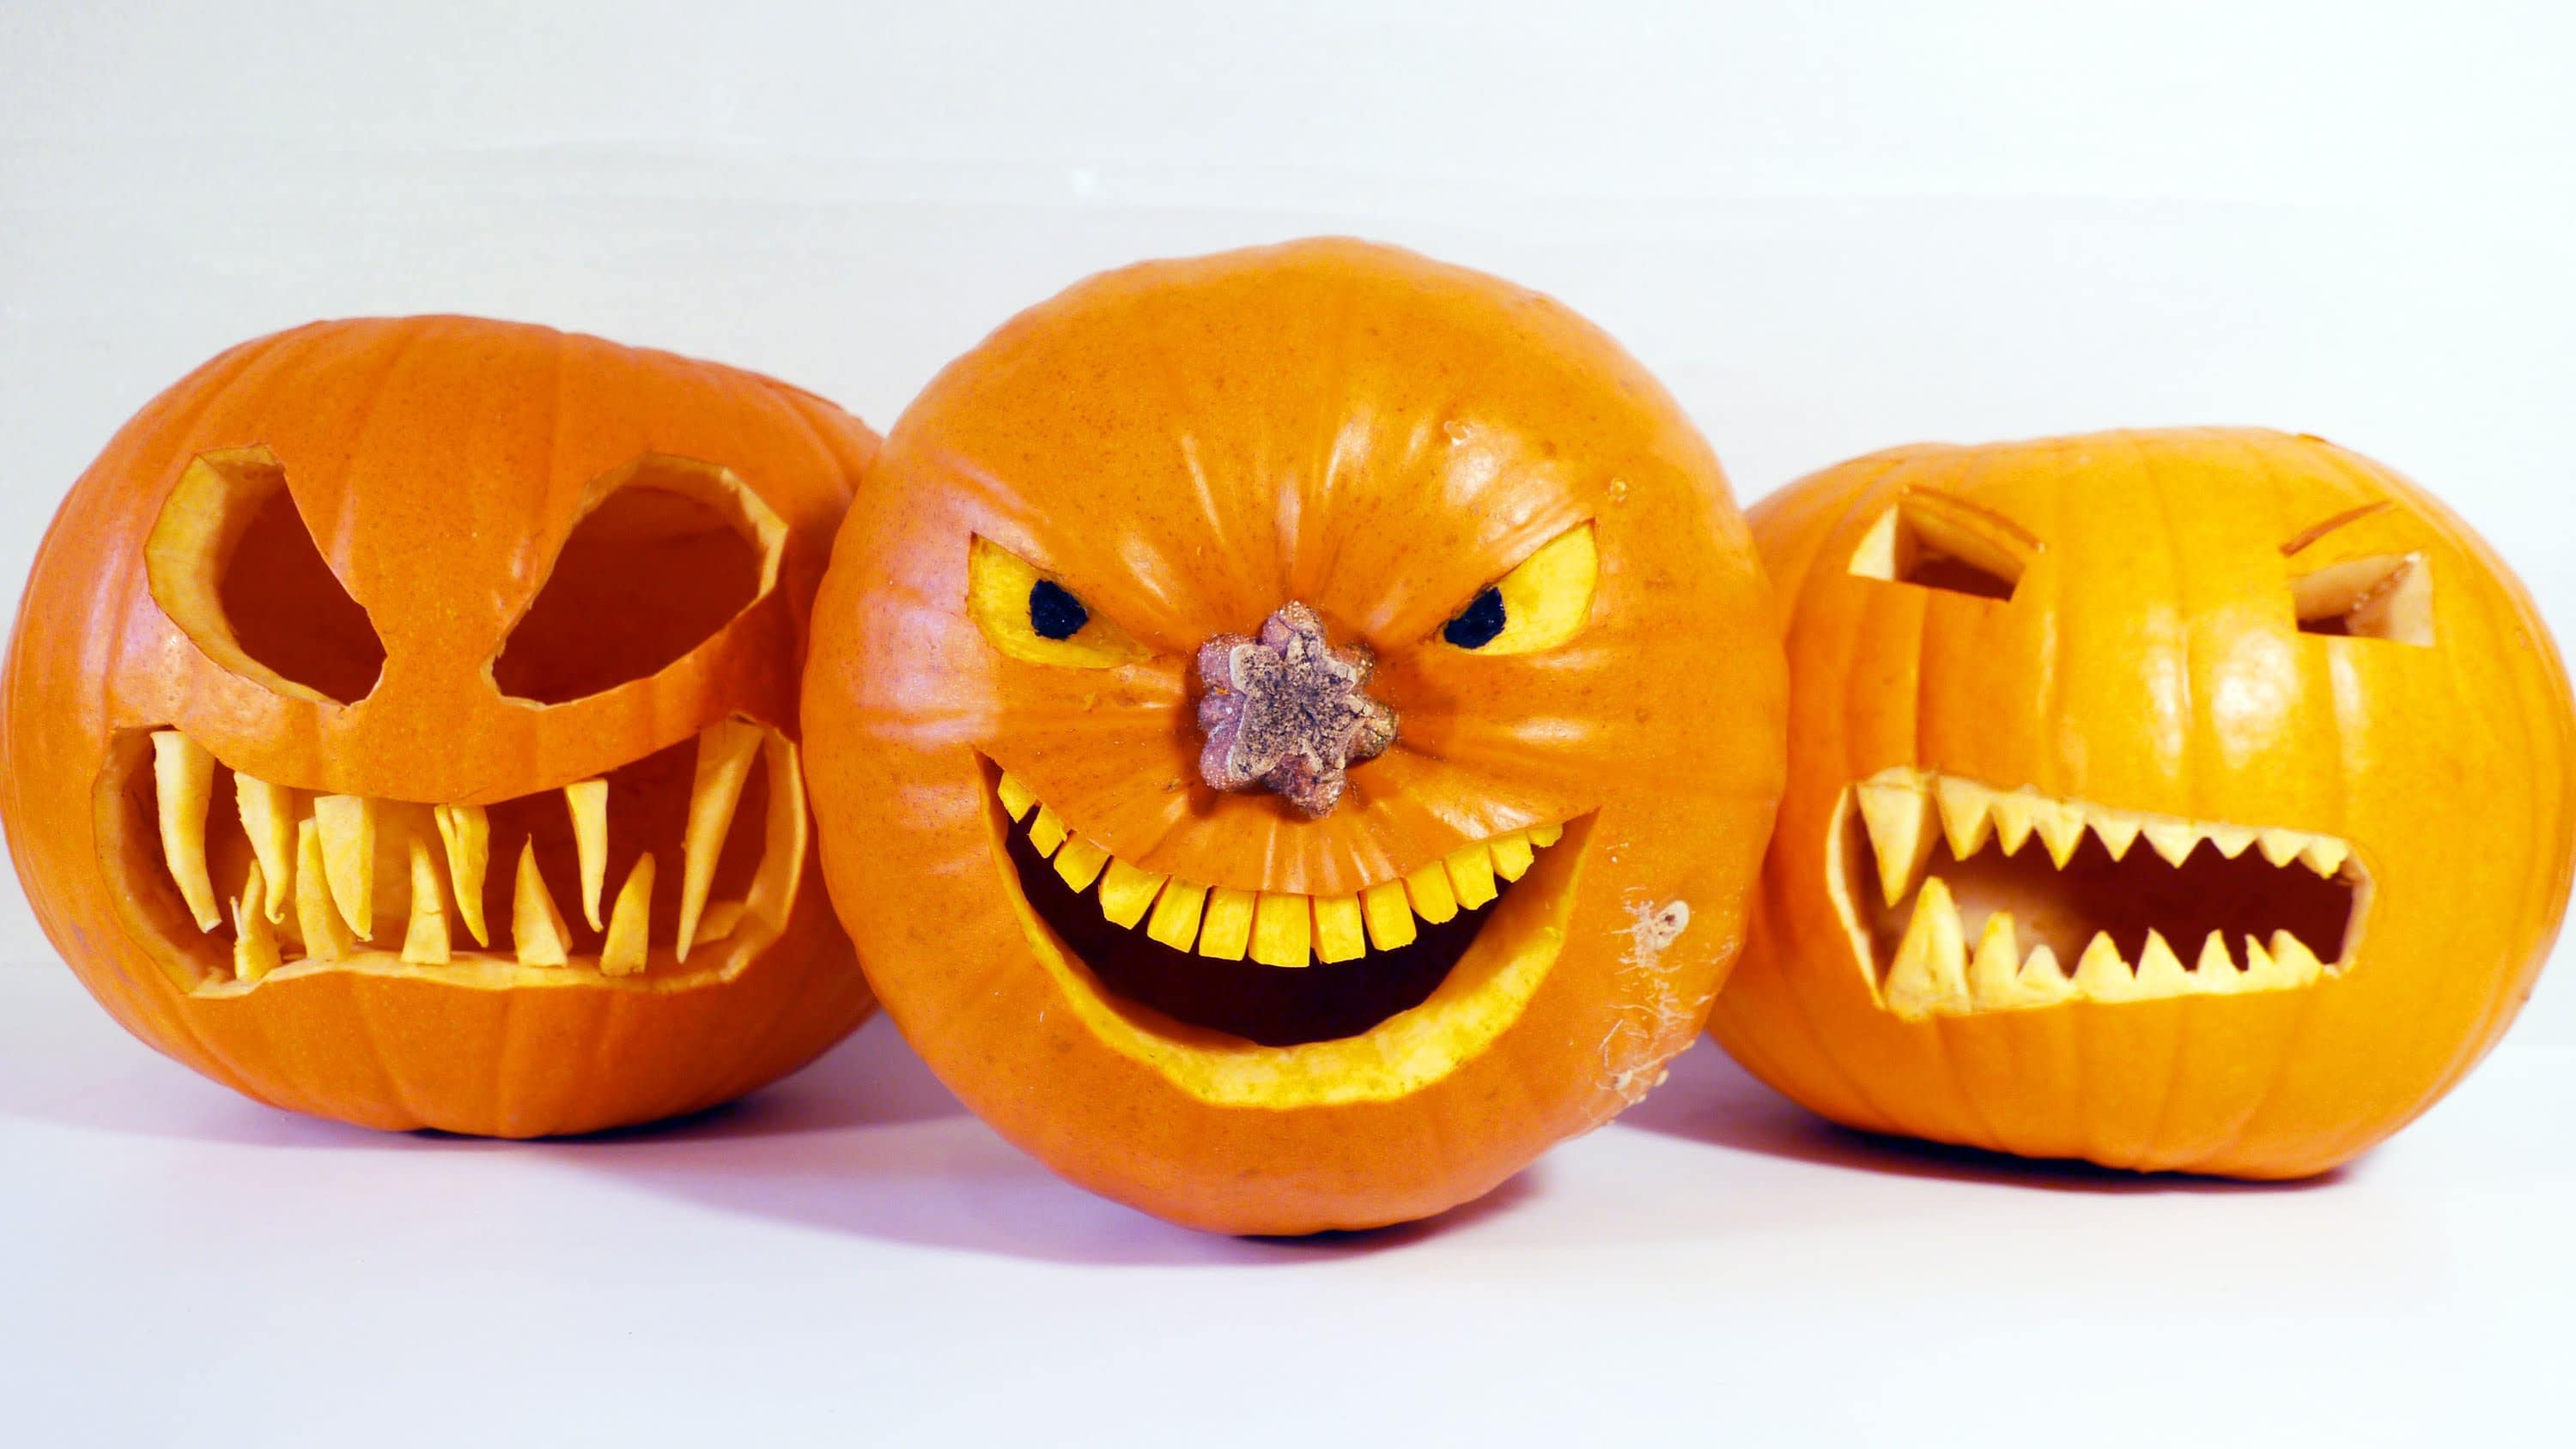 pumpkin template with fangs  How to make Halloween jack-o-lanterns with scary teeth